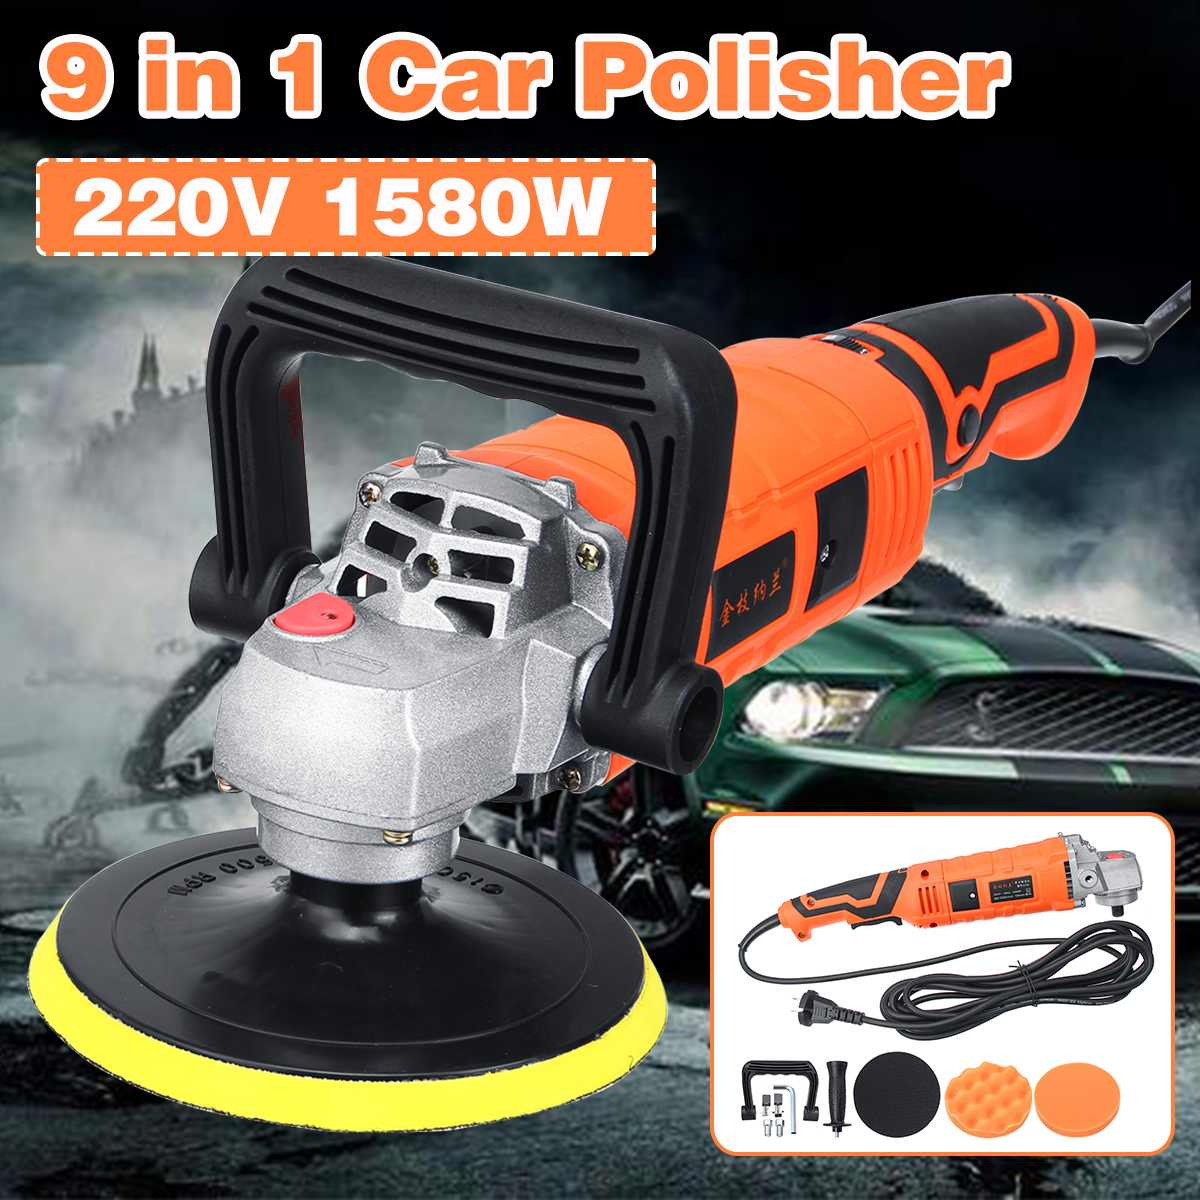 Car Polisher 1580W Variable Speed 3300rpm Car Paint Care Tool Polishing Machine Sander 220V 7Gear Speed Electric Floor PolisherCar Polisher 1580W Variable Speed 3300rpm Car Paint Care Tool Polishing Machine Sander 220V 7Gear Speed Electric Floor Polisher